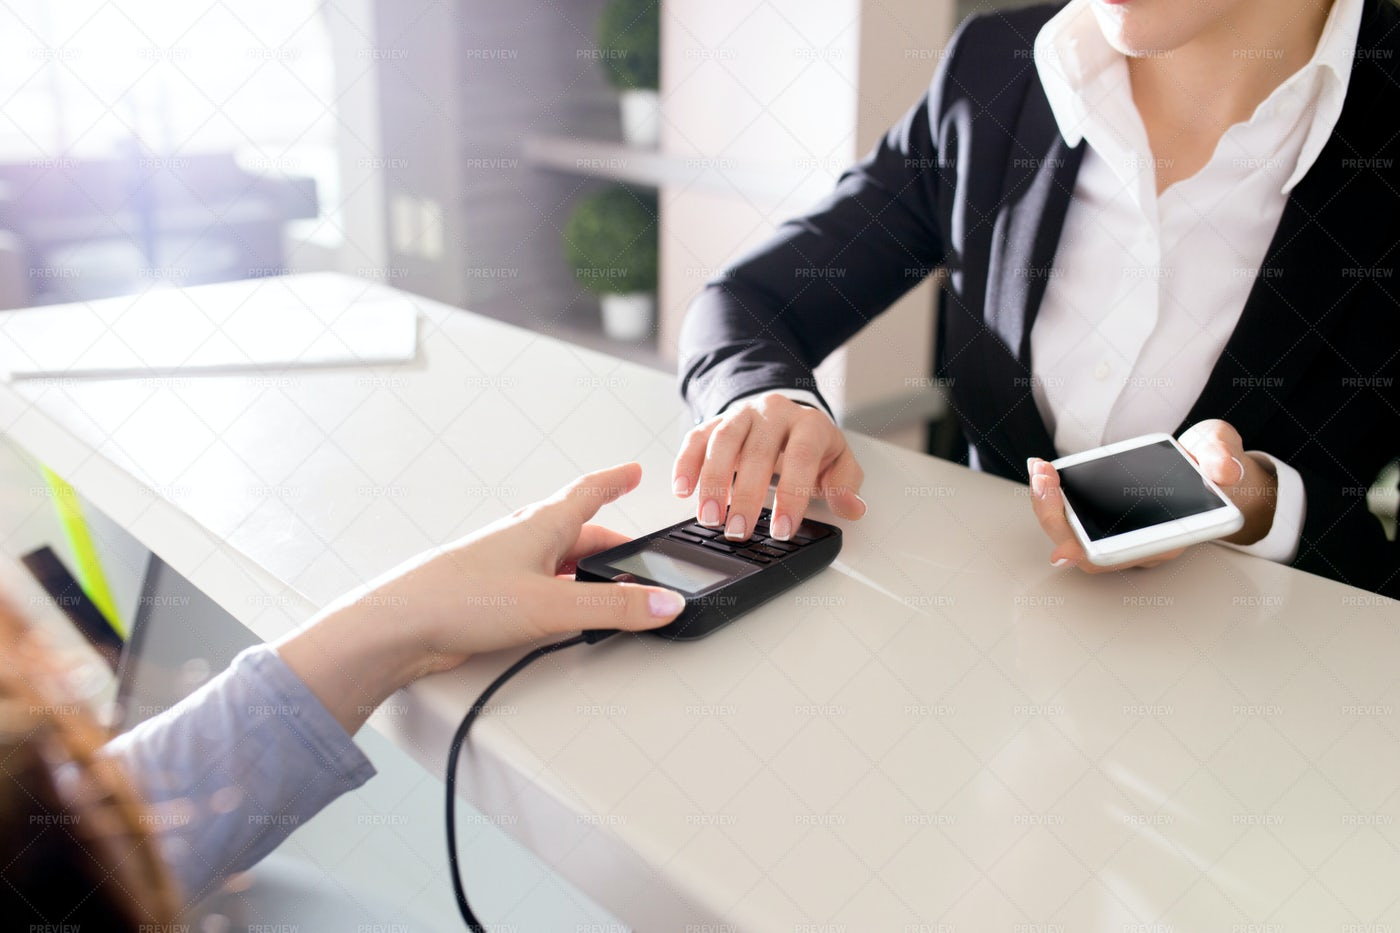 Paying With NFC Technology: Stock Photos